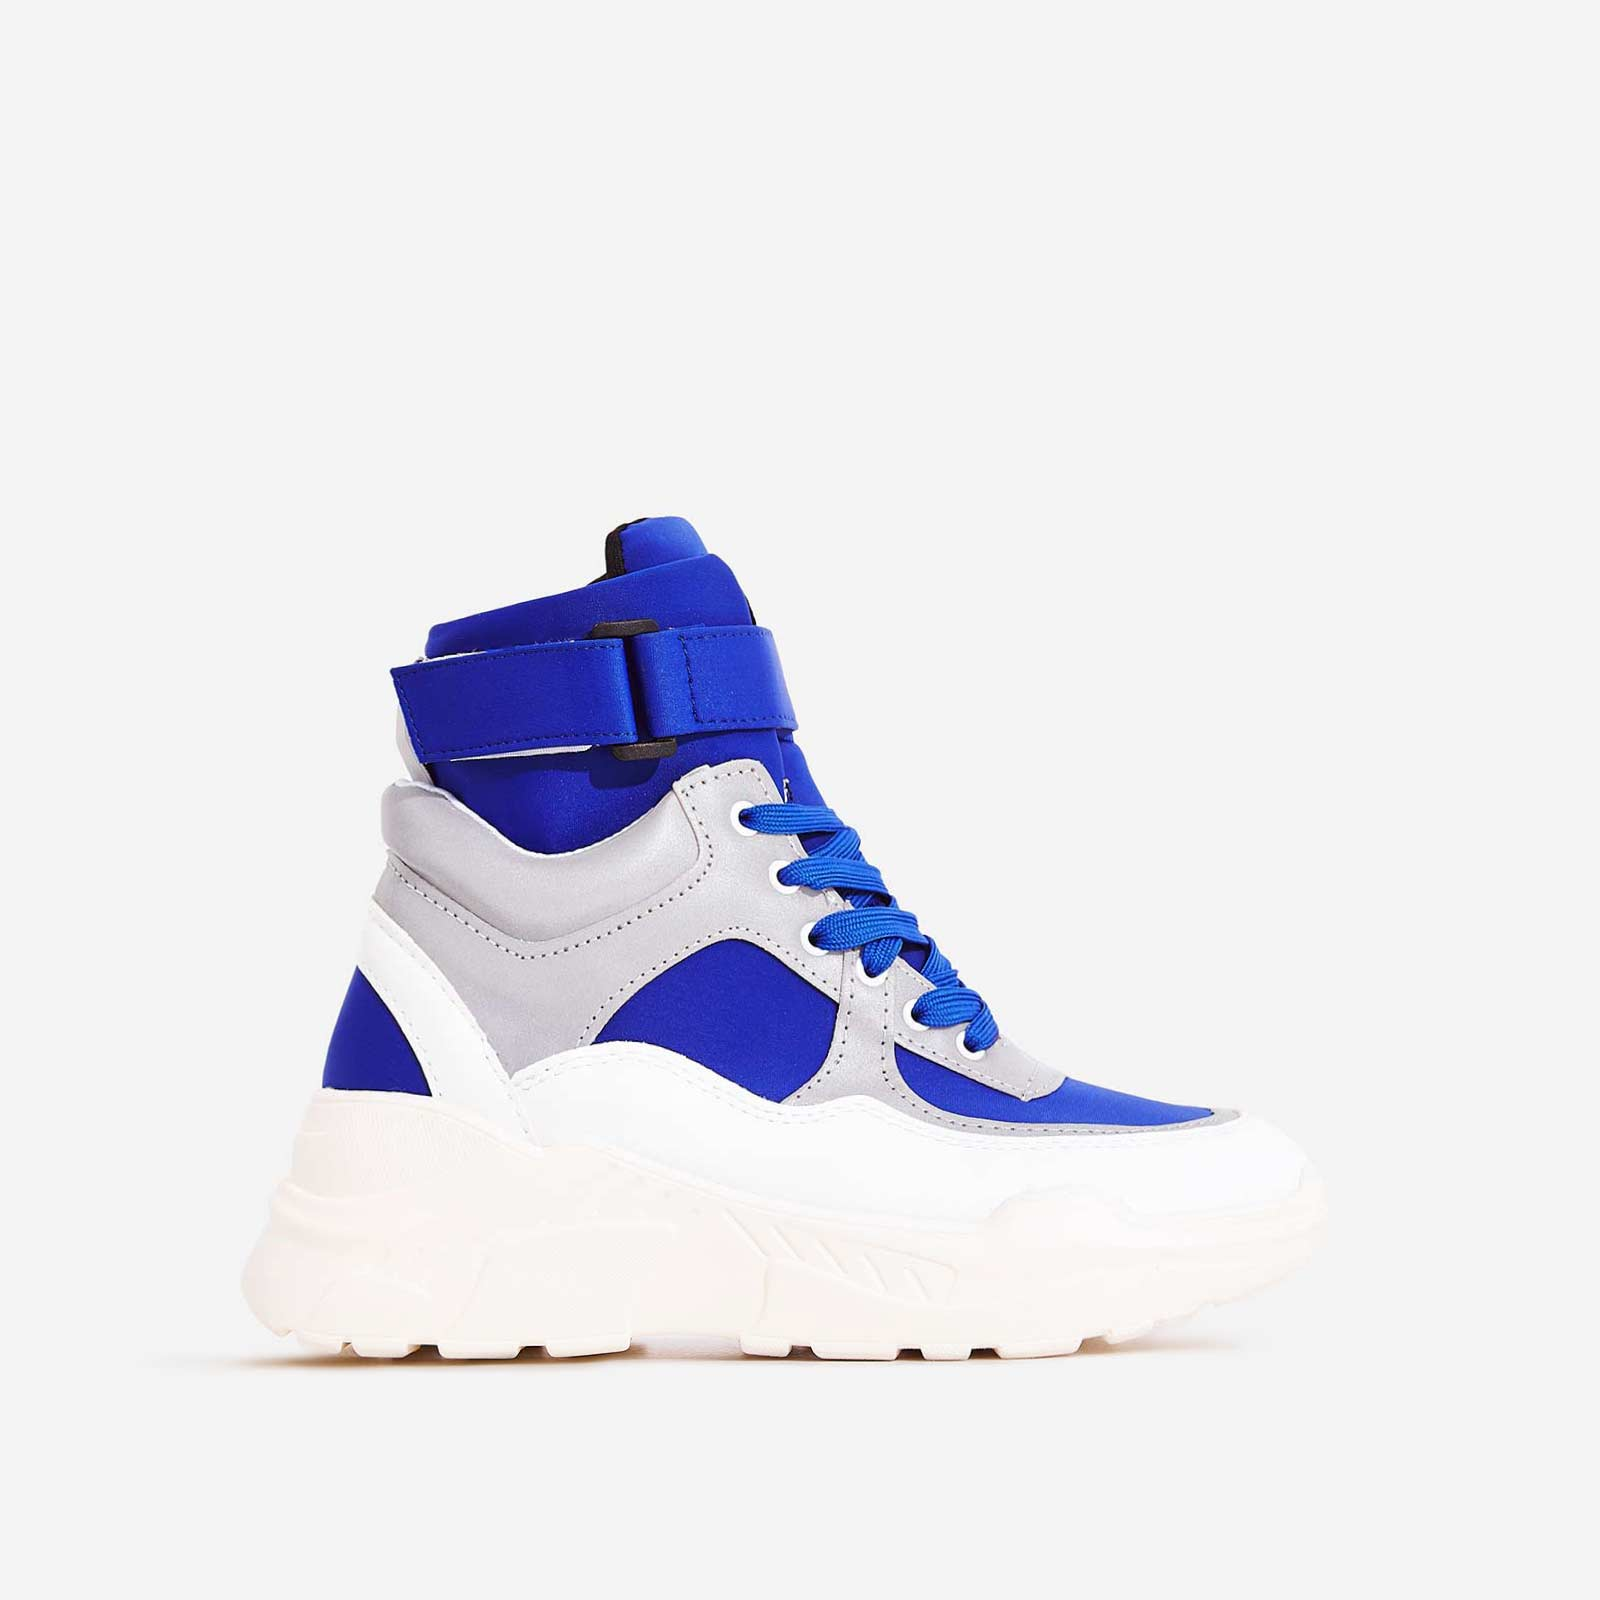 Coco High Top Reflective Trainer In Blue